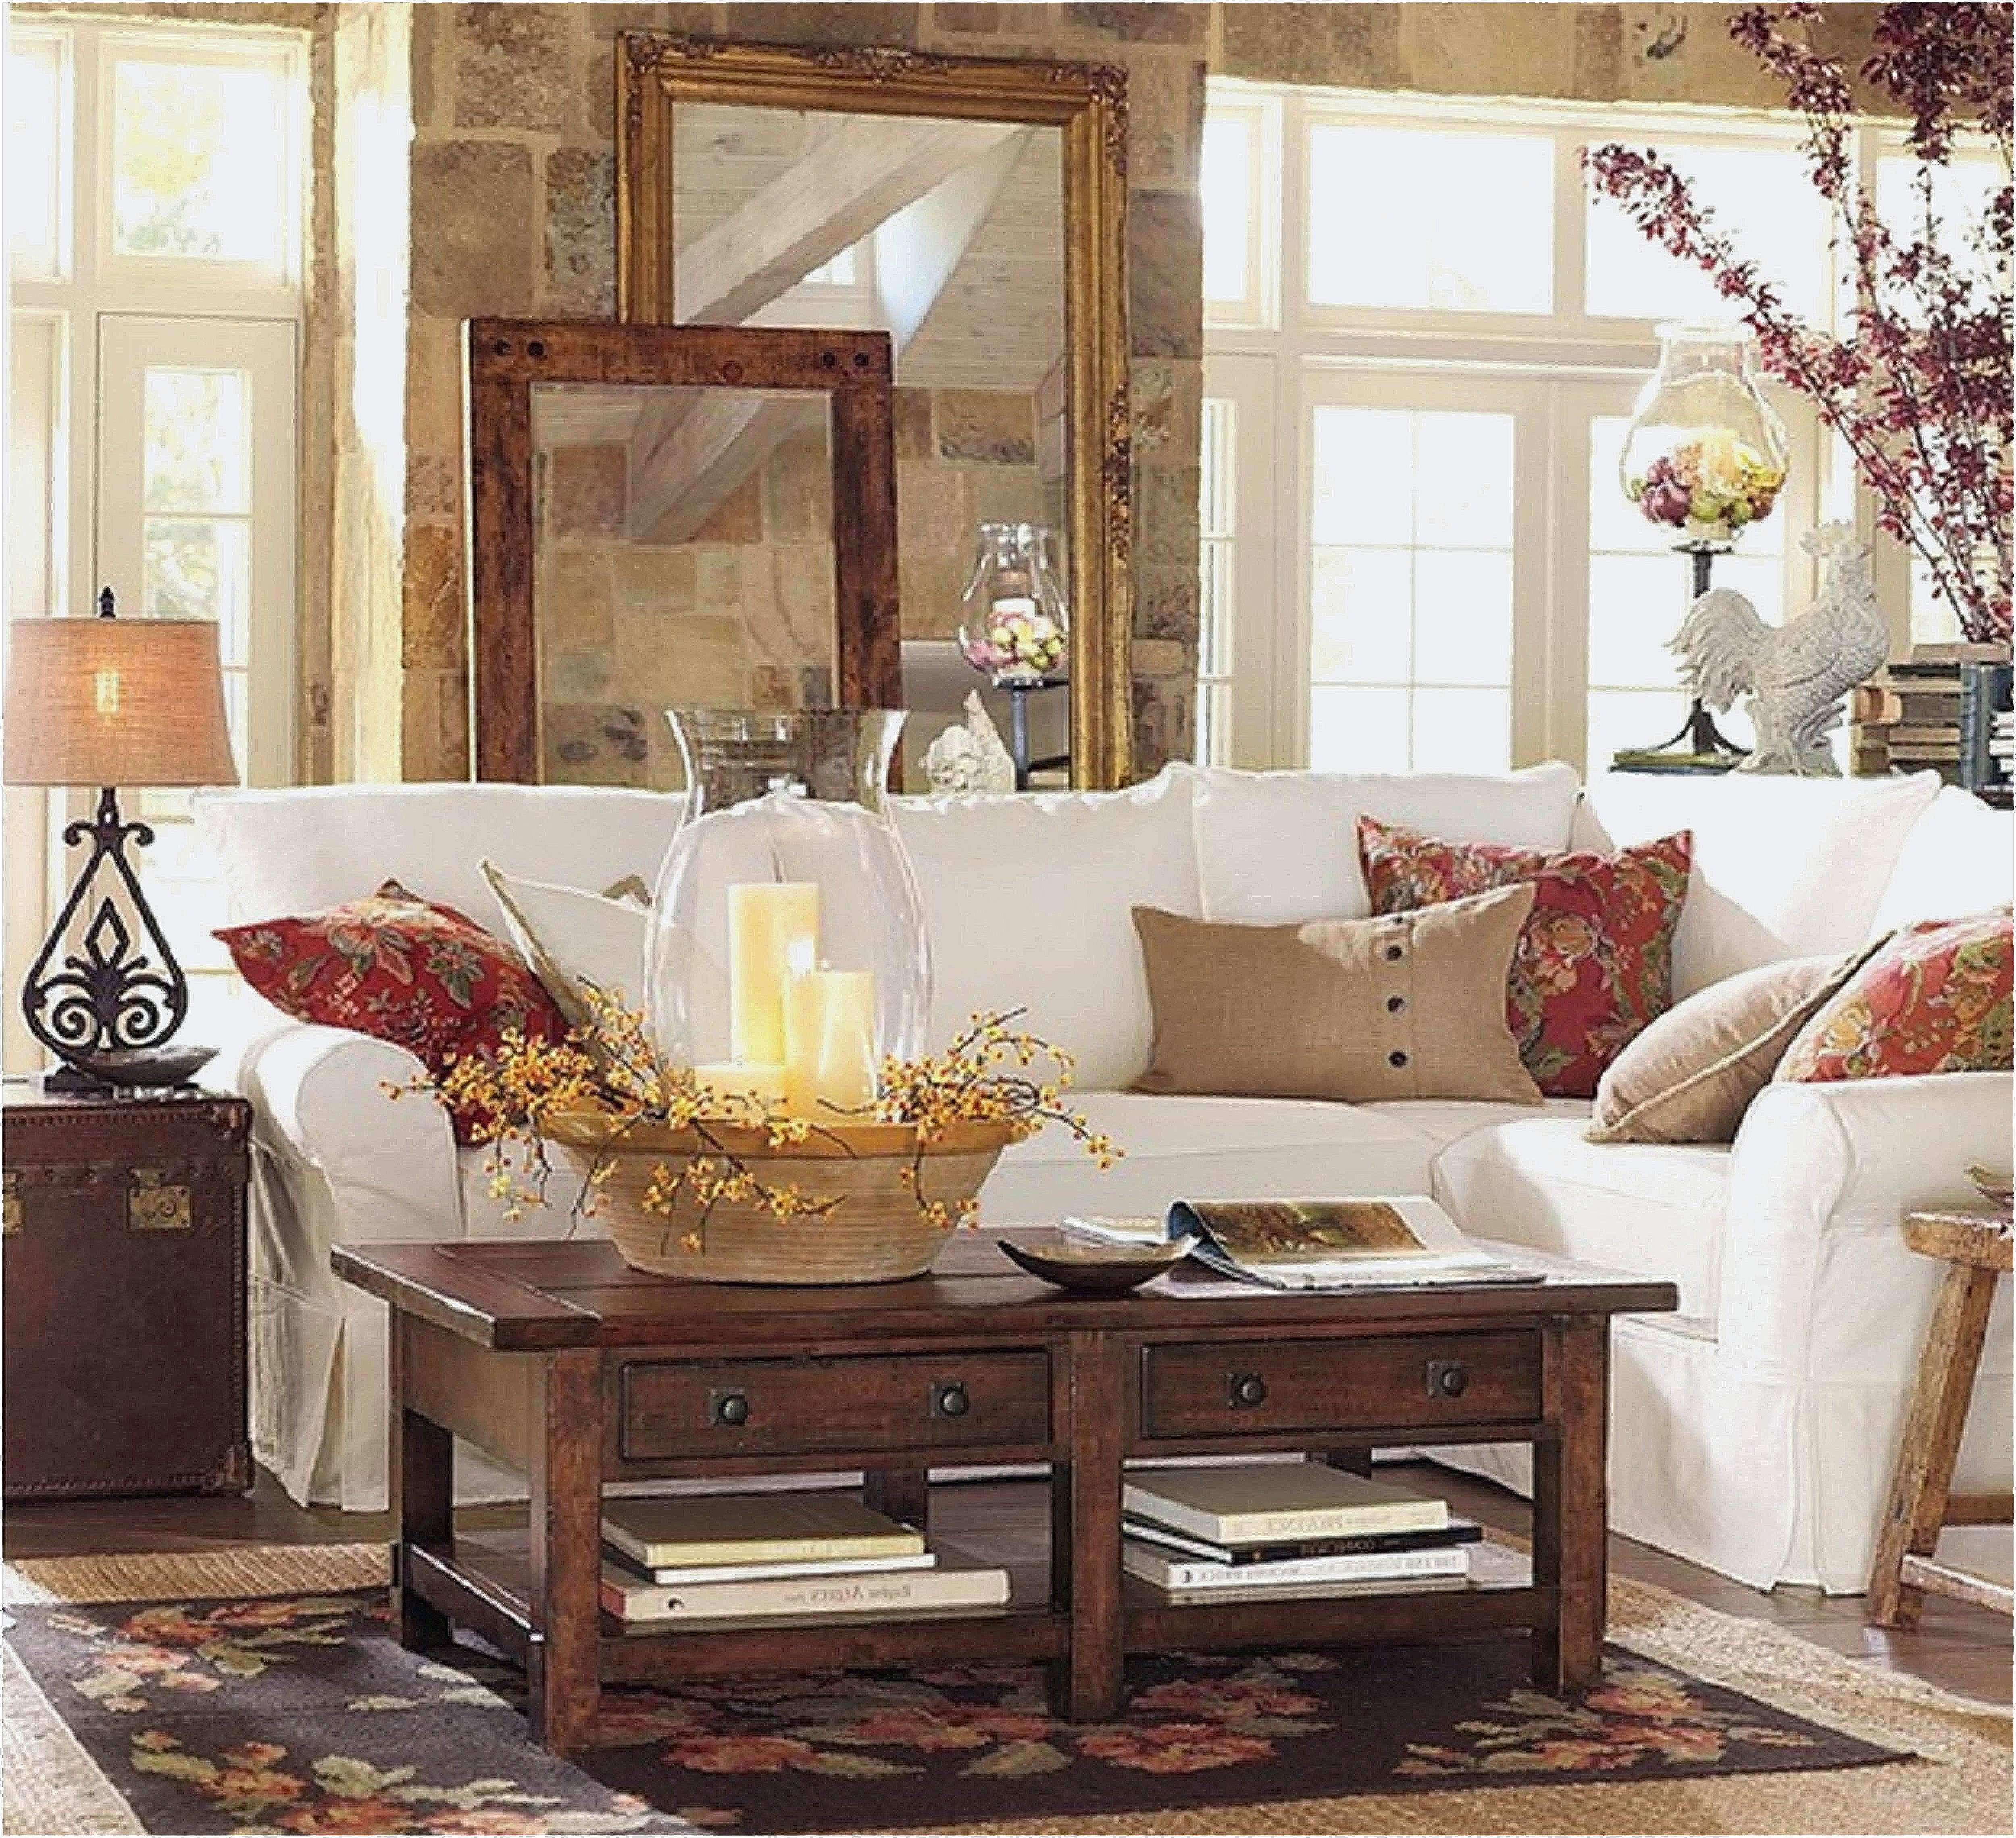 New Home Designs Latest Modern Living Room Designs Ideas: New Lake House Decorating Ideas Bedroom (With Images